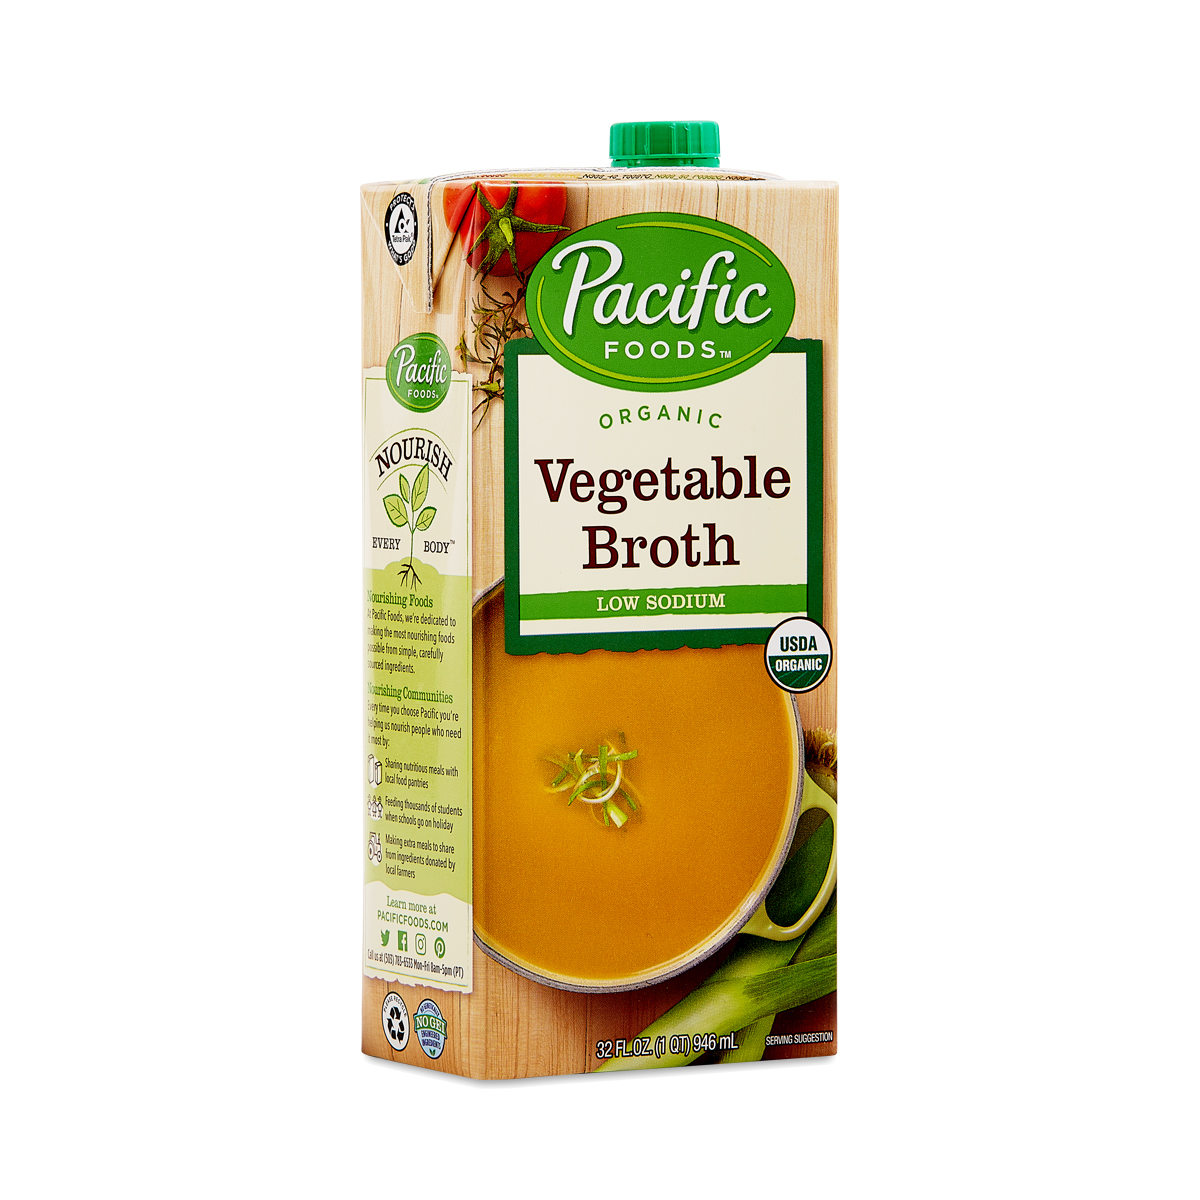 Pacific Foods Organic Low Sodium Vegetable Broth 32 fl oz carton